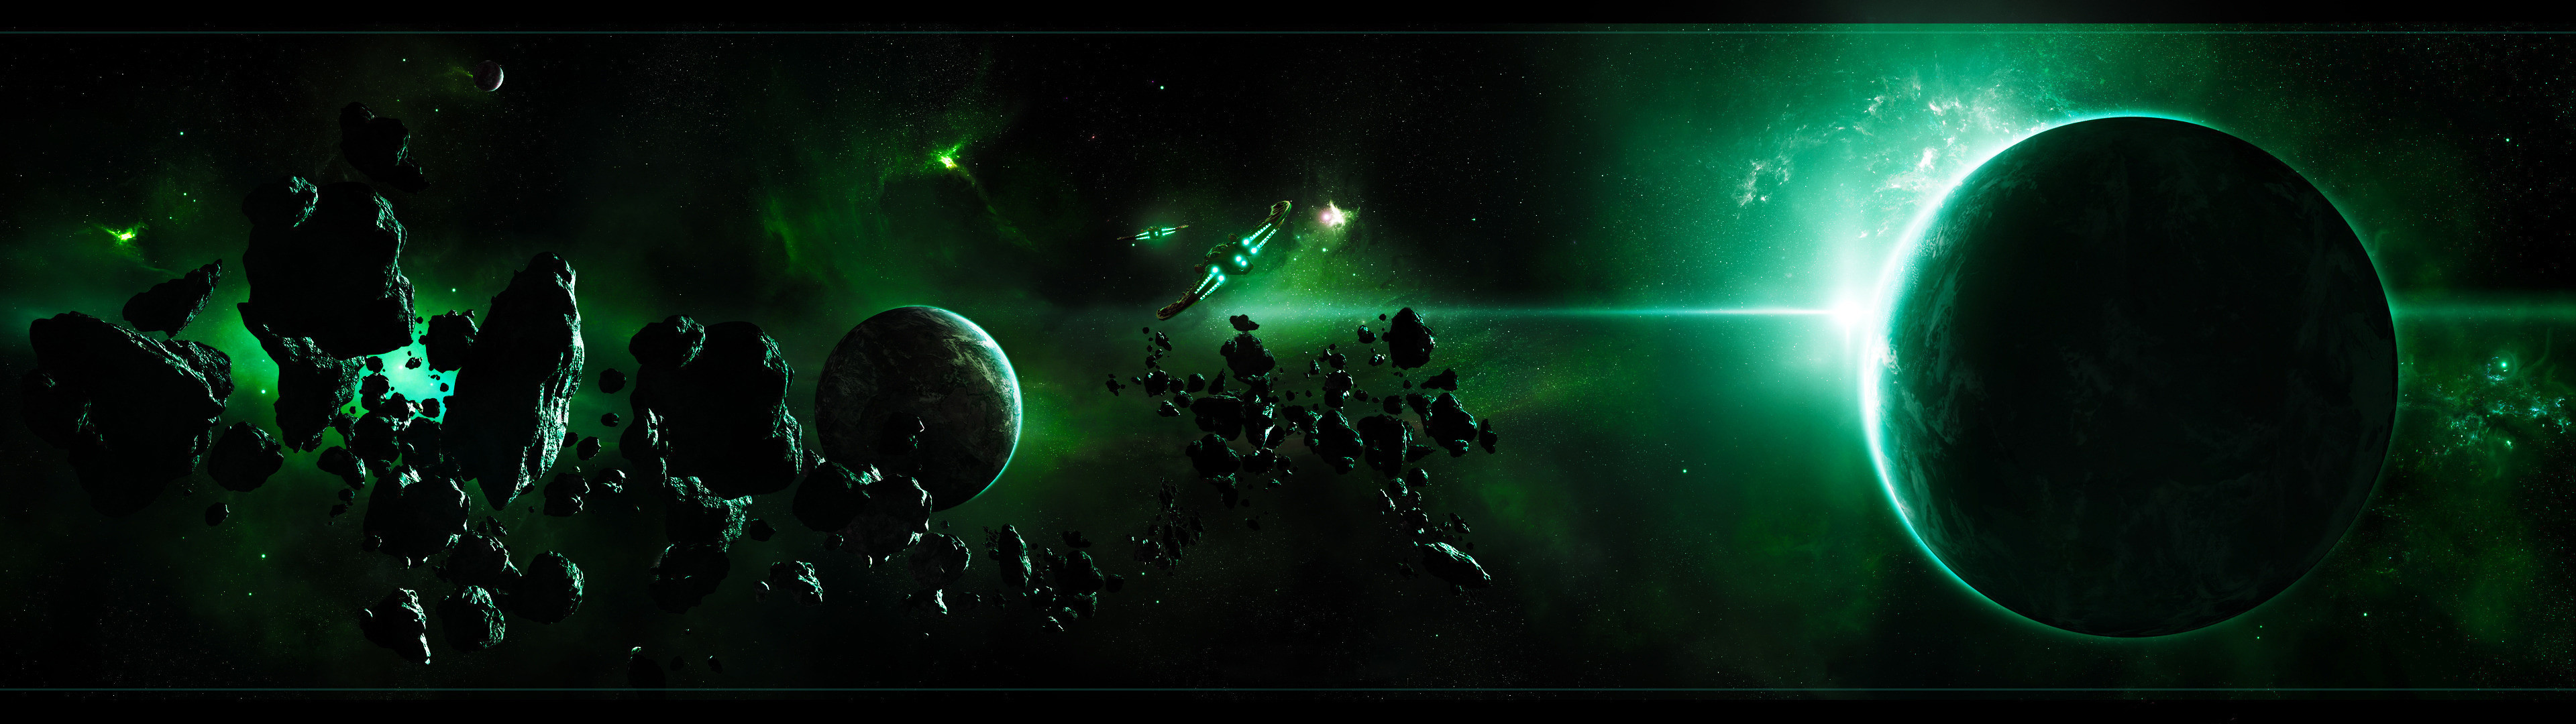 Dual Monitor Wallpapers Space (62+ background pictures)